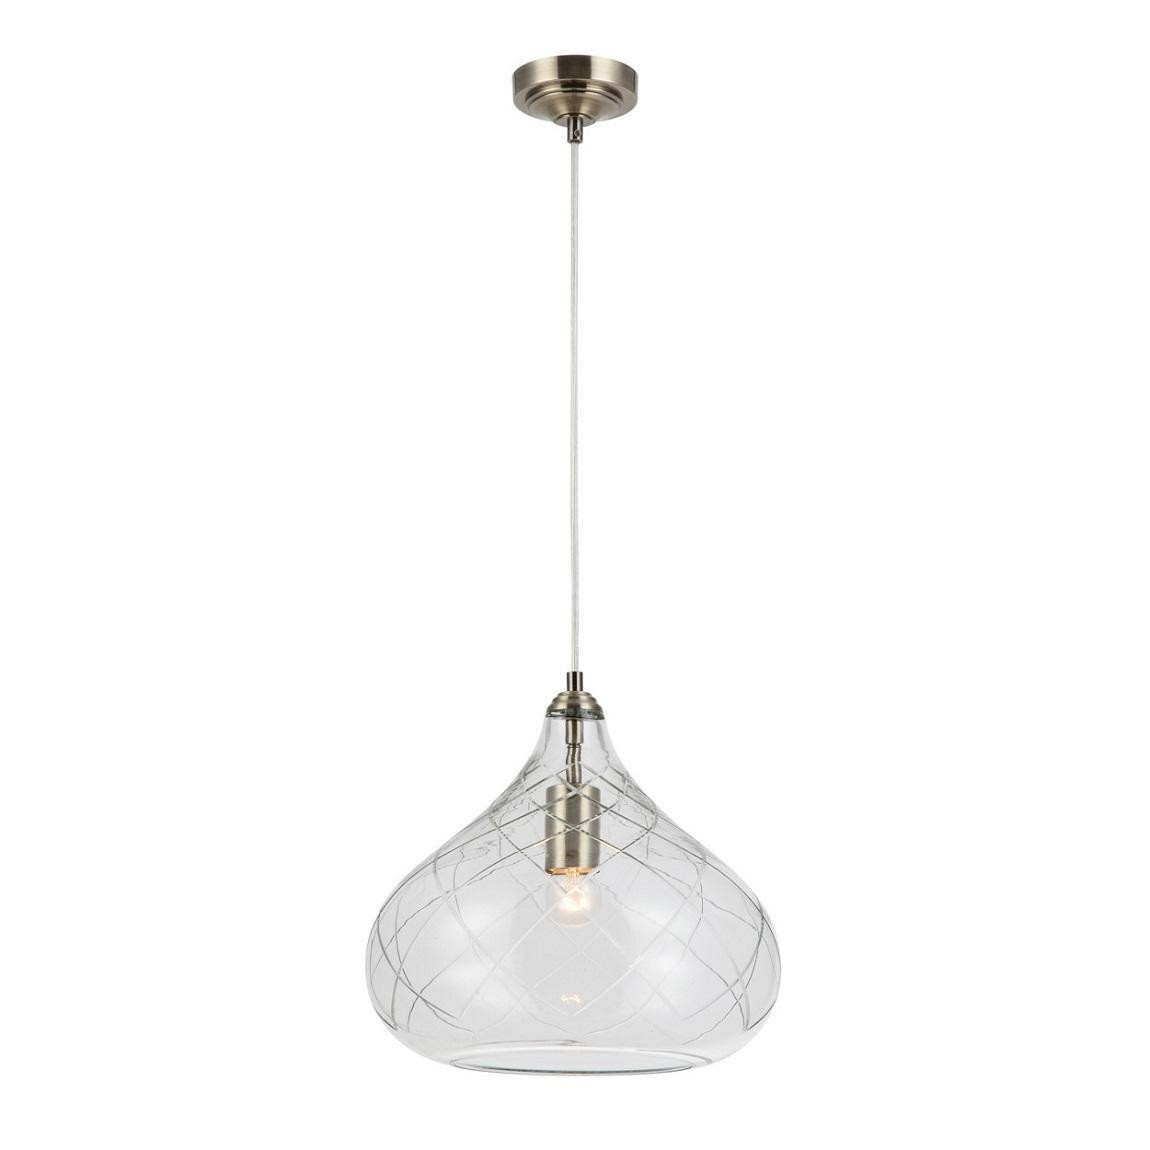 Home-Collection-Audrey-Pendant-Light.jpg